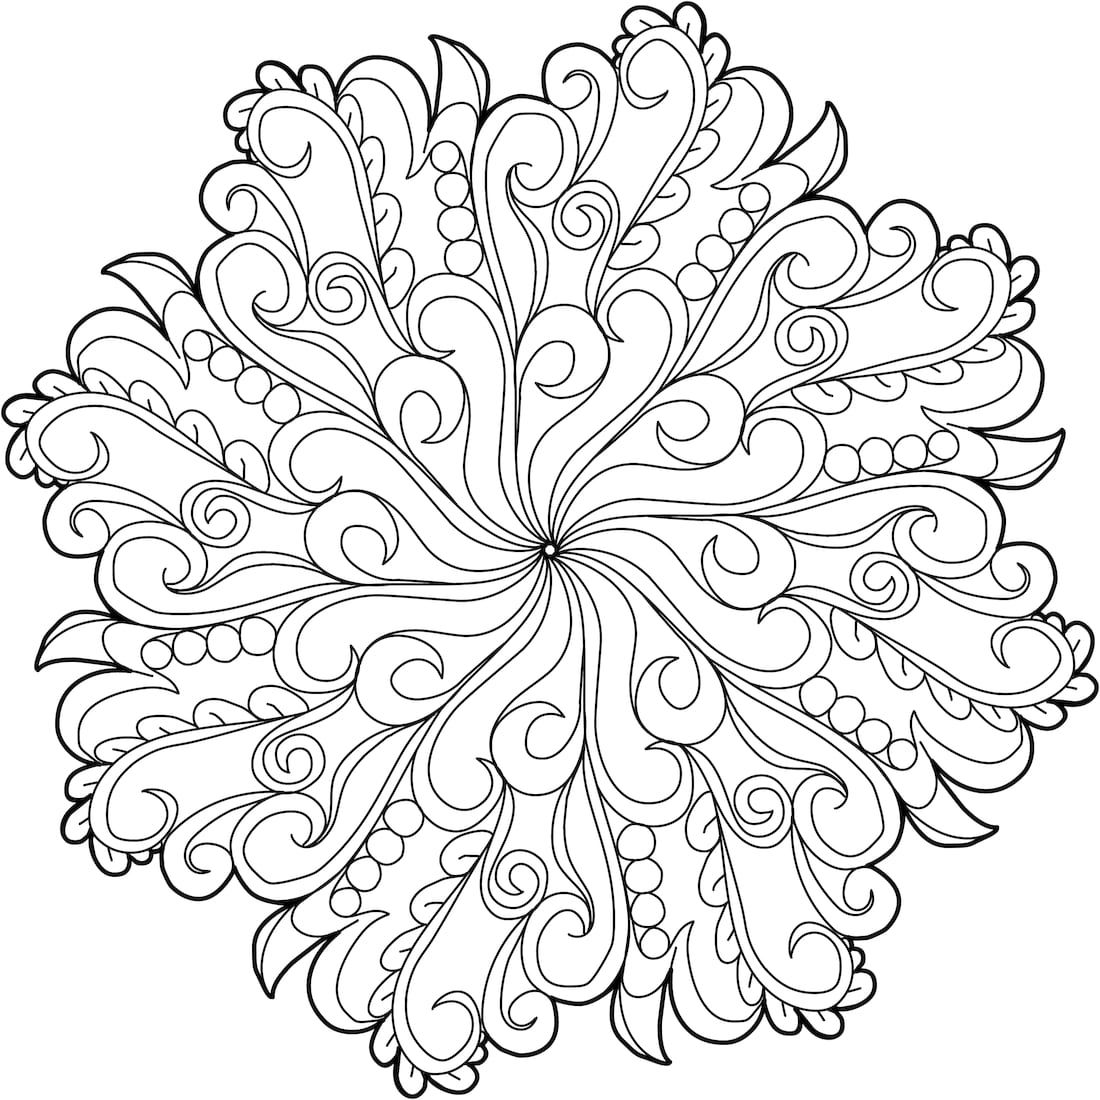 Feathered Friend - a free printable coloring page. One of 100+! ...